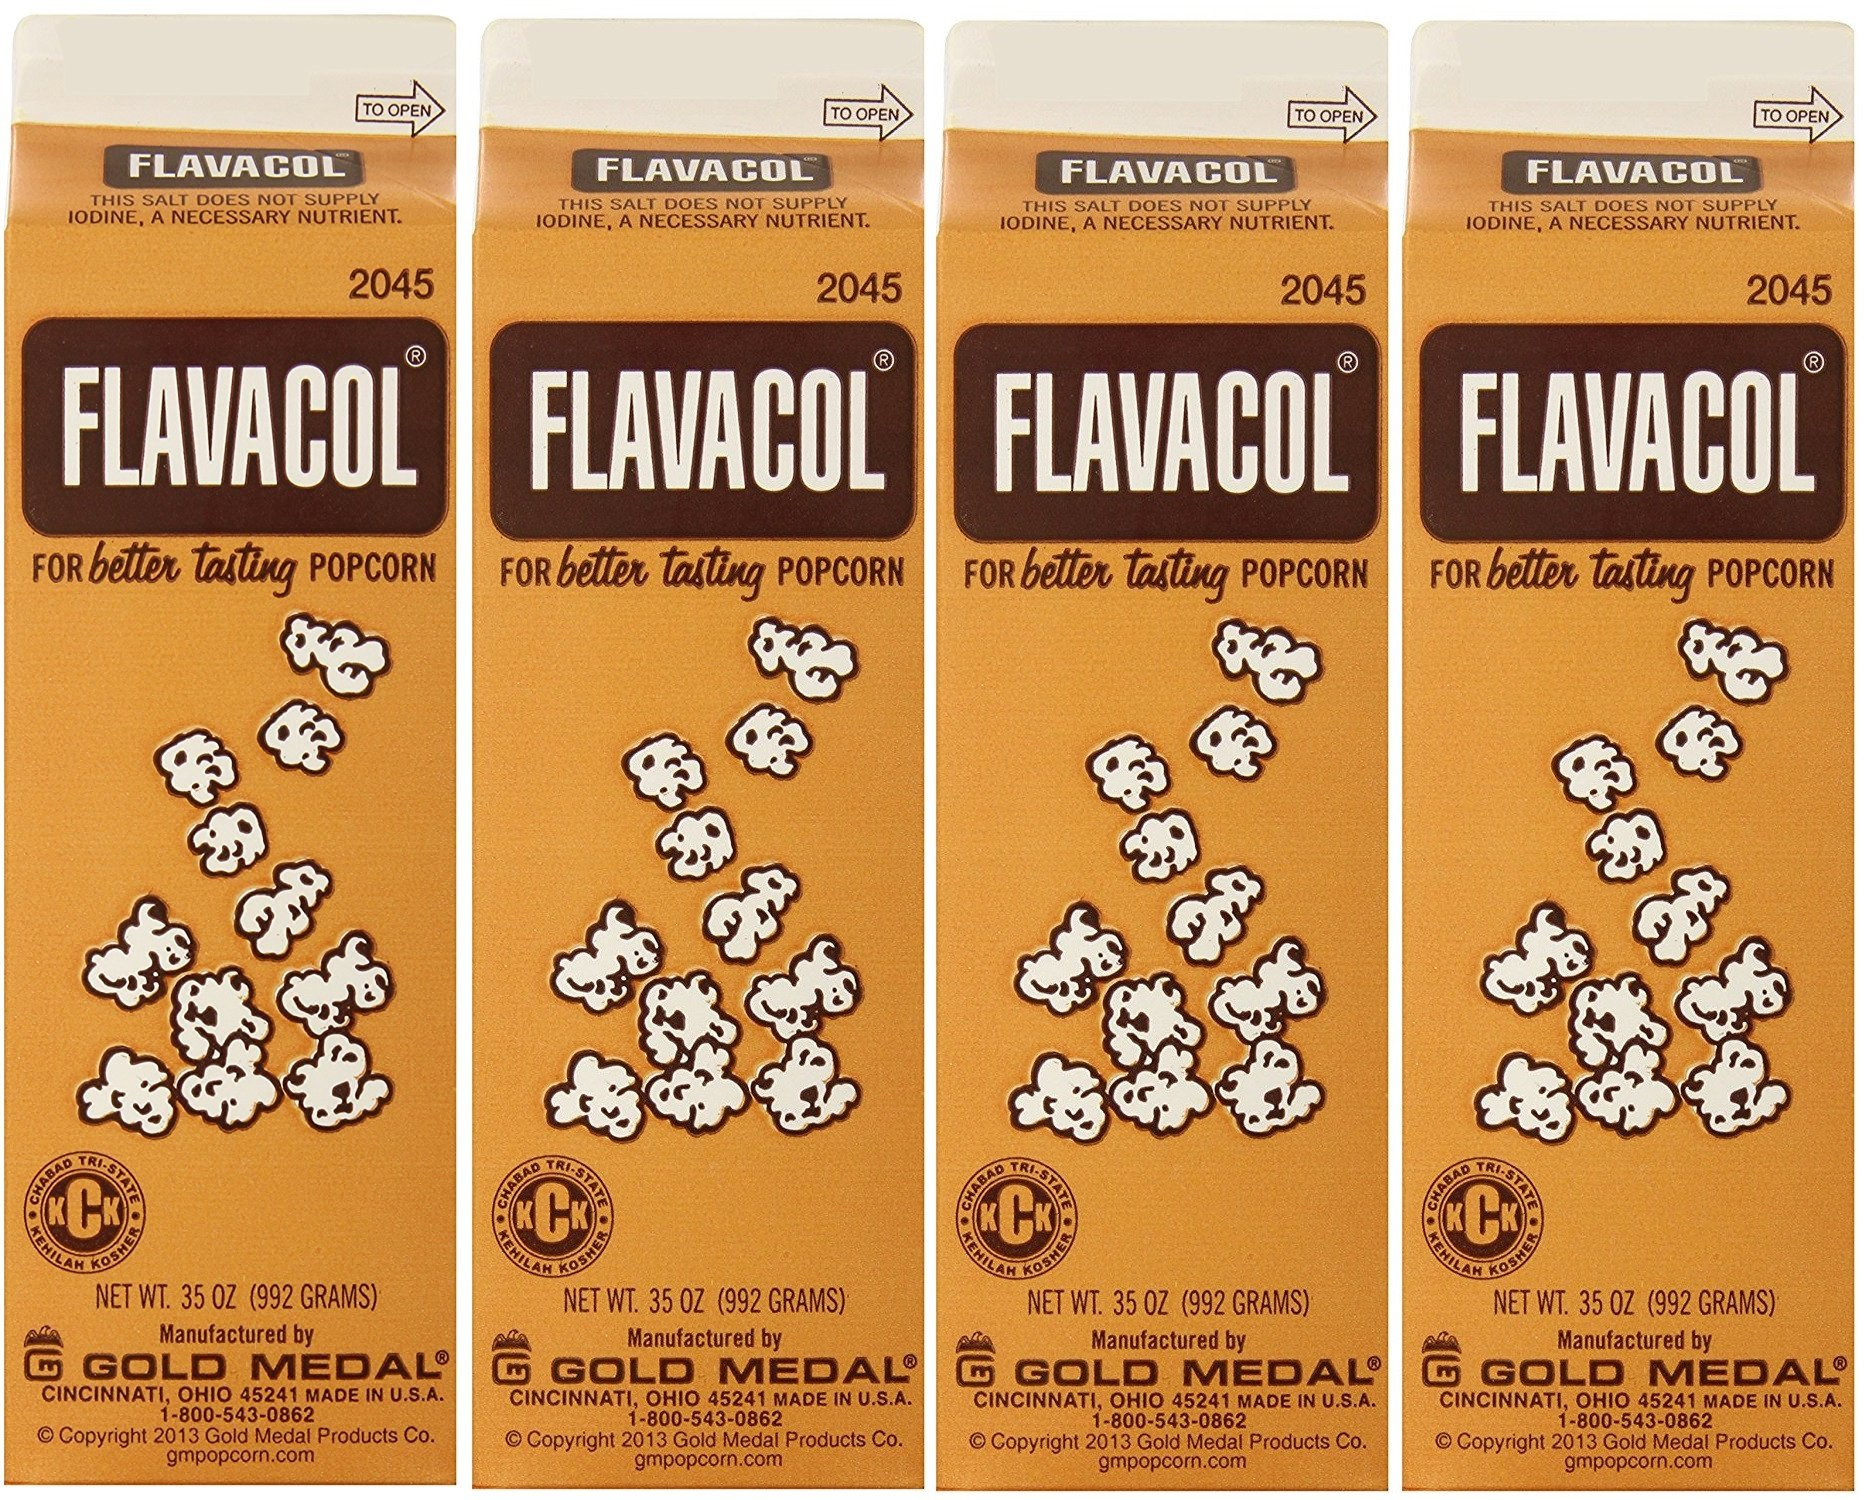 Gold Medal Prod. 2045 Flavacol Seasoning XOaZvo Popcorn Salt 35oz., 4 Pack